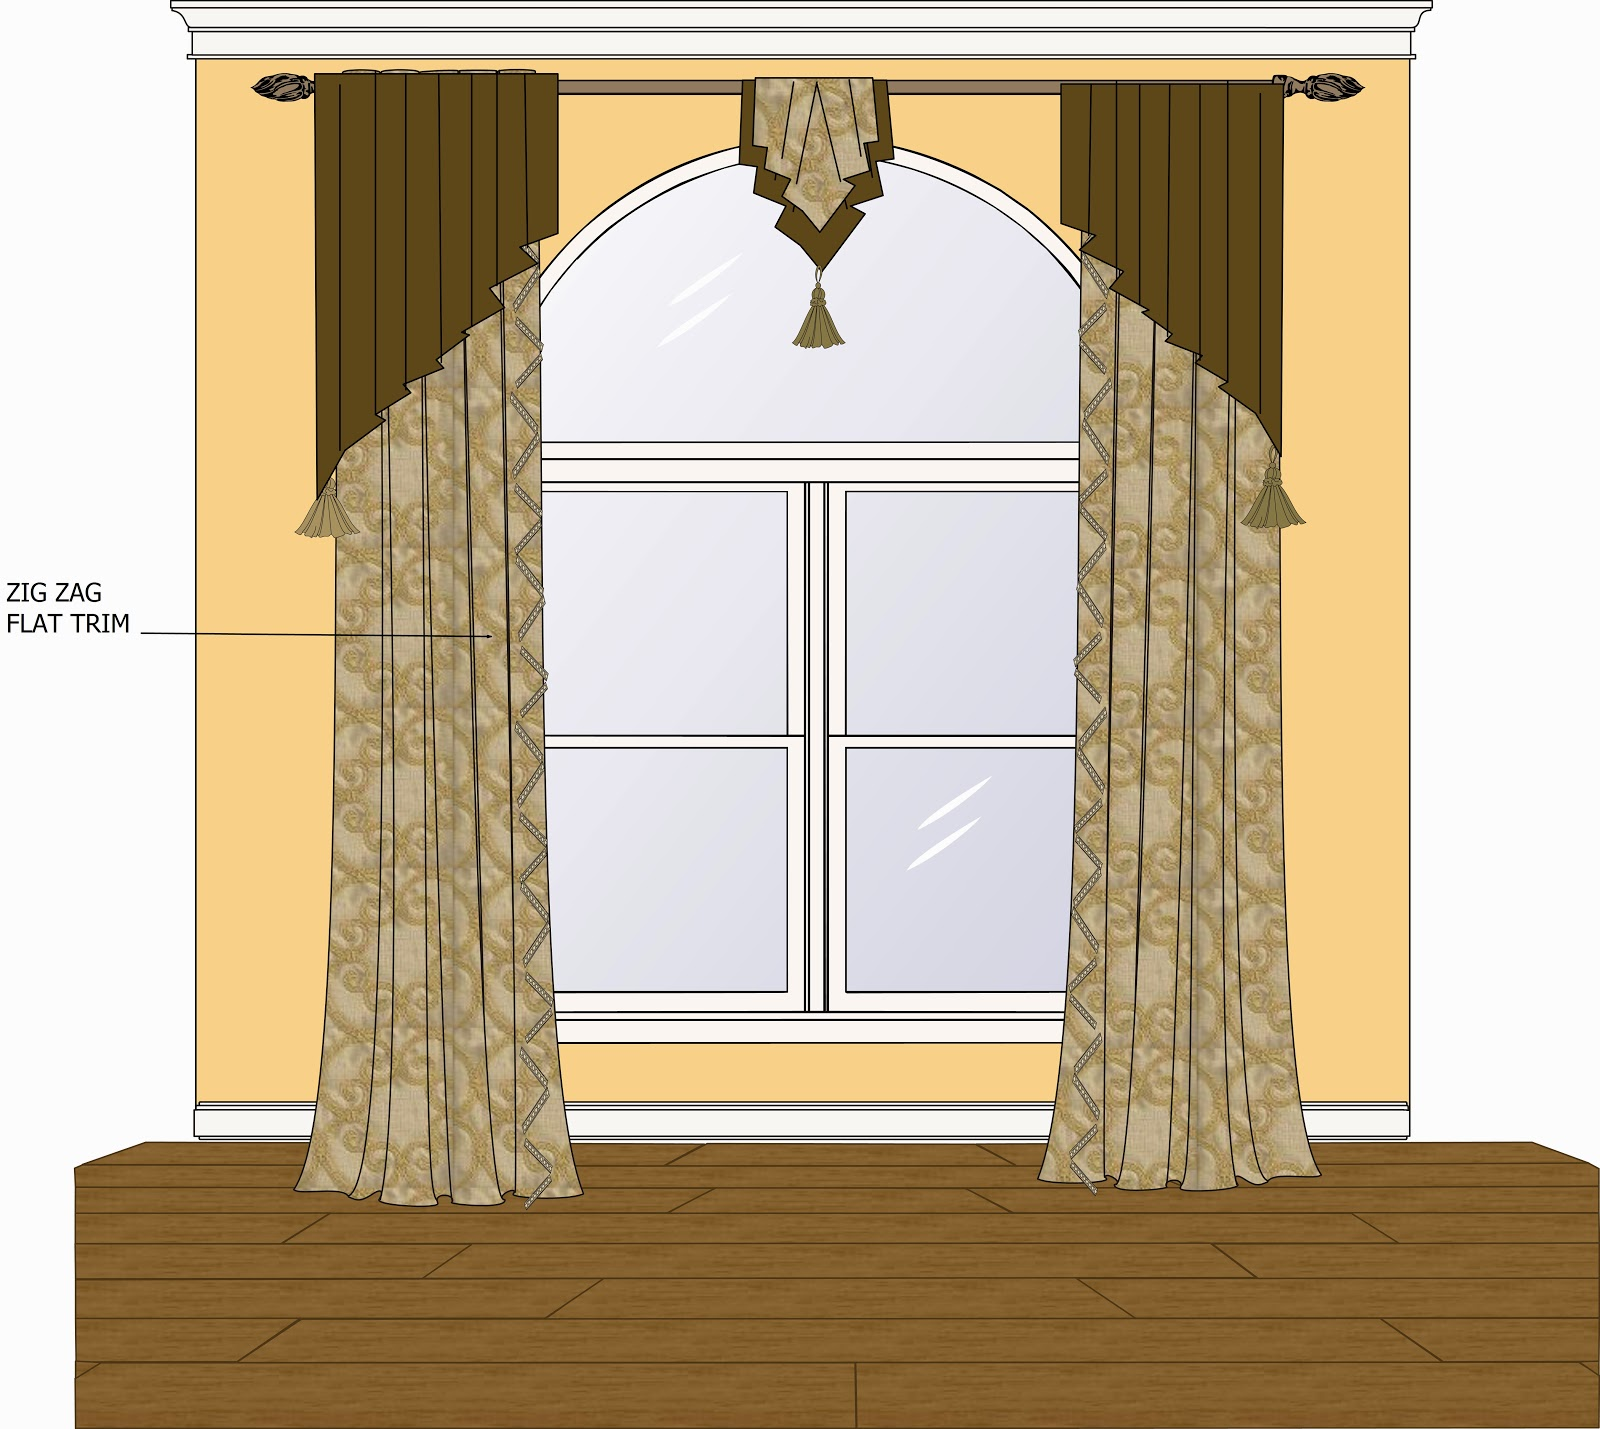 different drapery designs for your home part 2 - Drapery Design Ideas